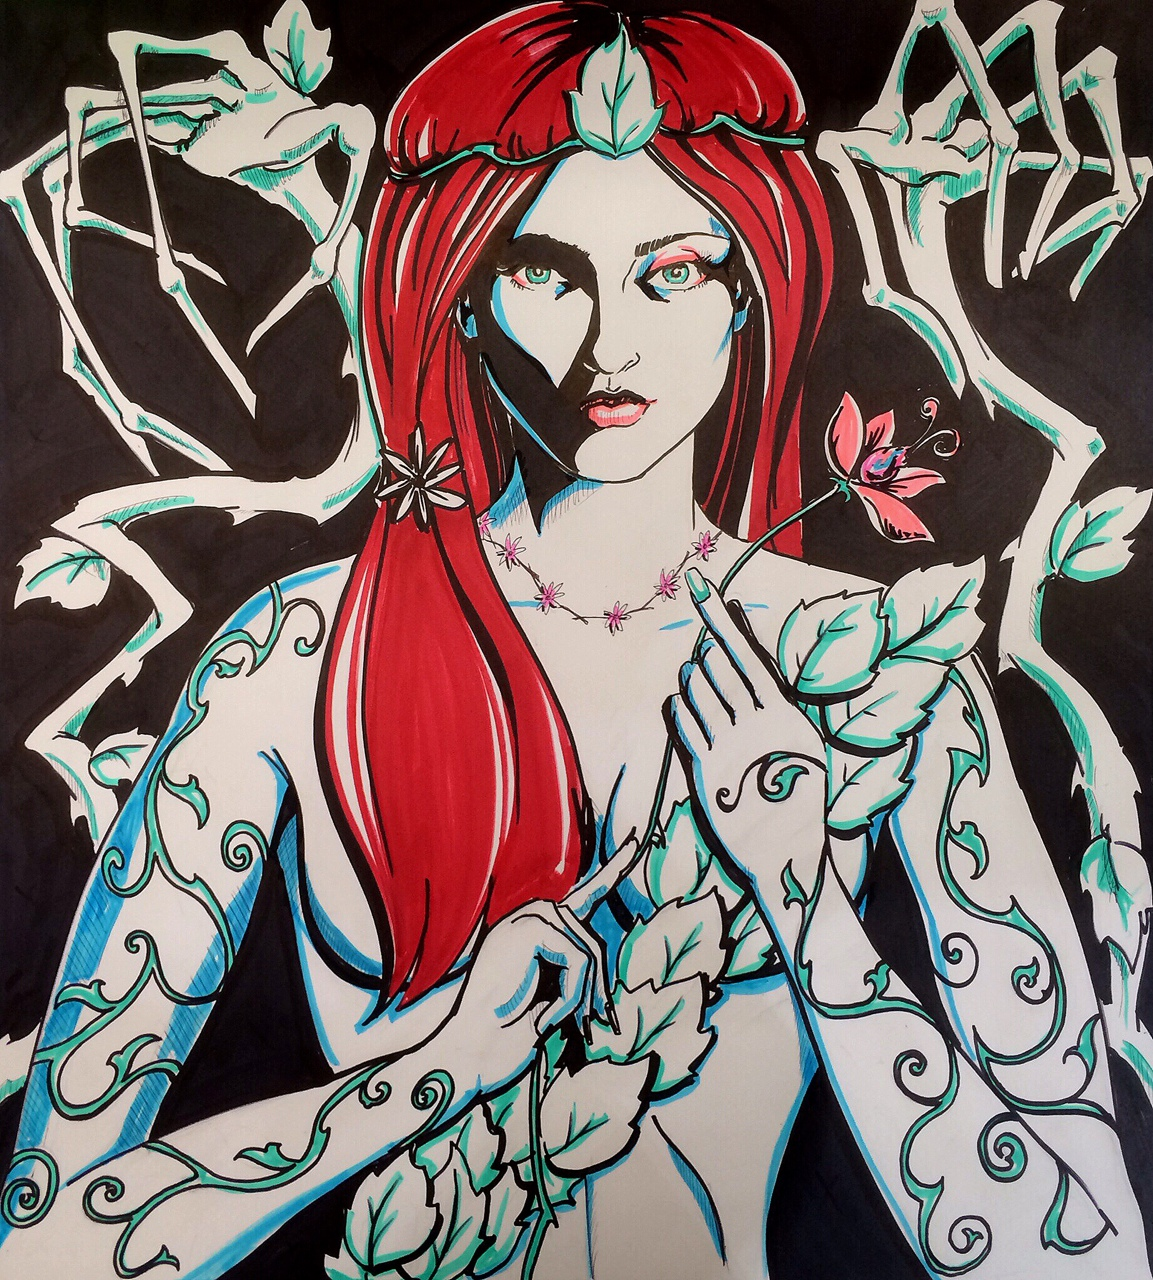 So I drew Poison Ivy. .. Hmm starting to feel itchy…. Weird. Don't forget to scratch at that follow button!